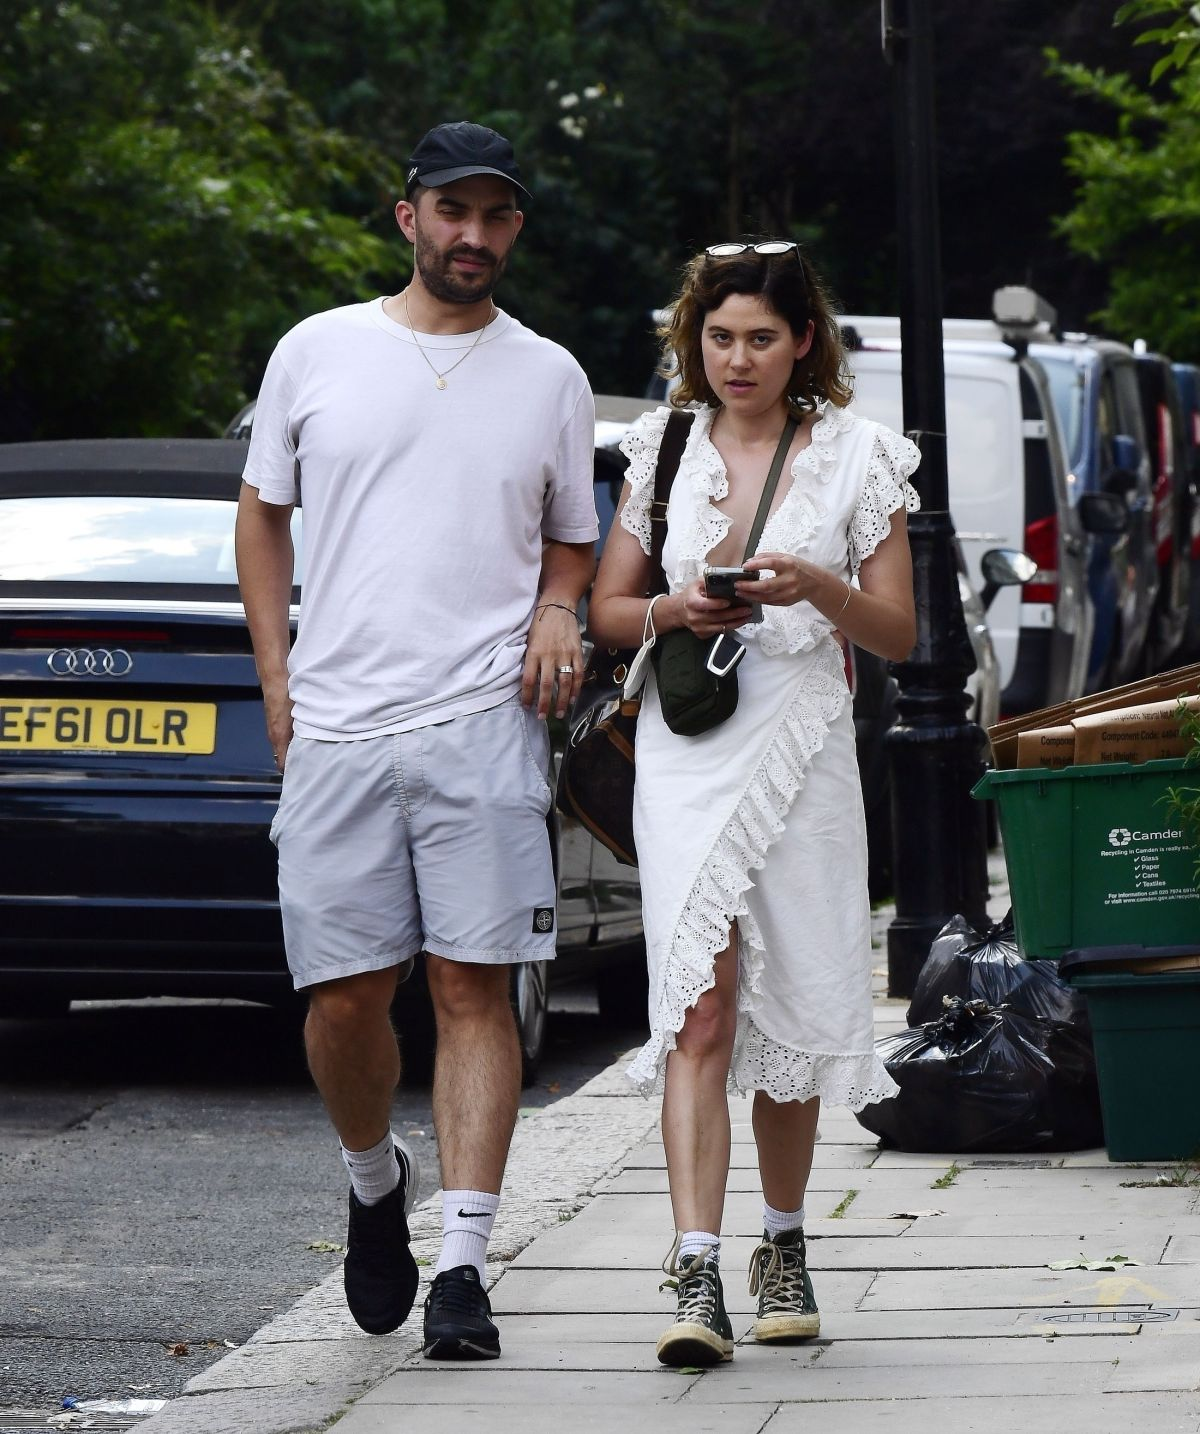 Eliza Doolittle Out and about with a mystery male friend ...